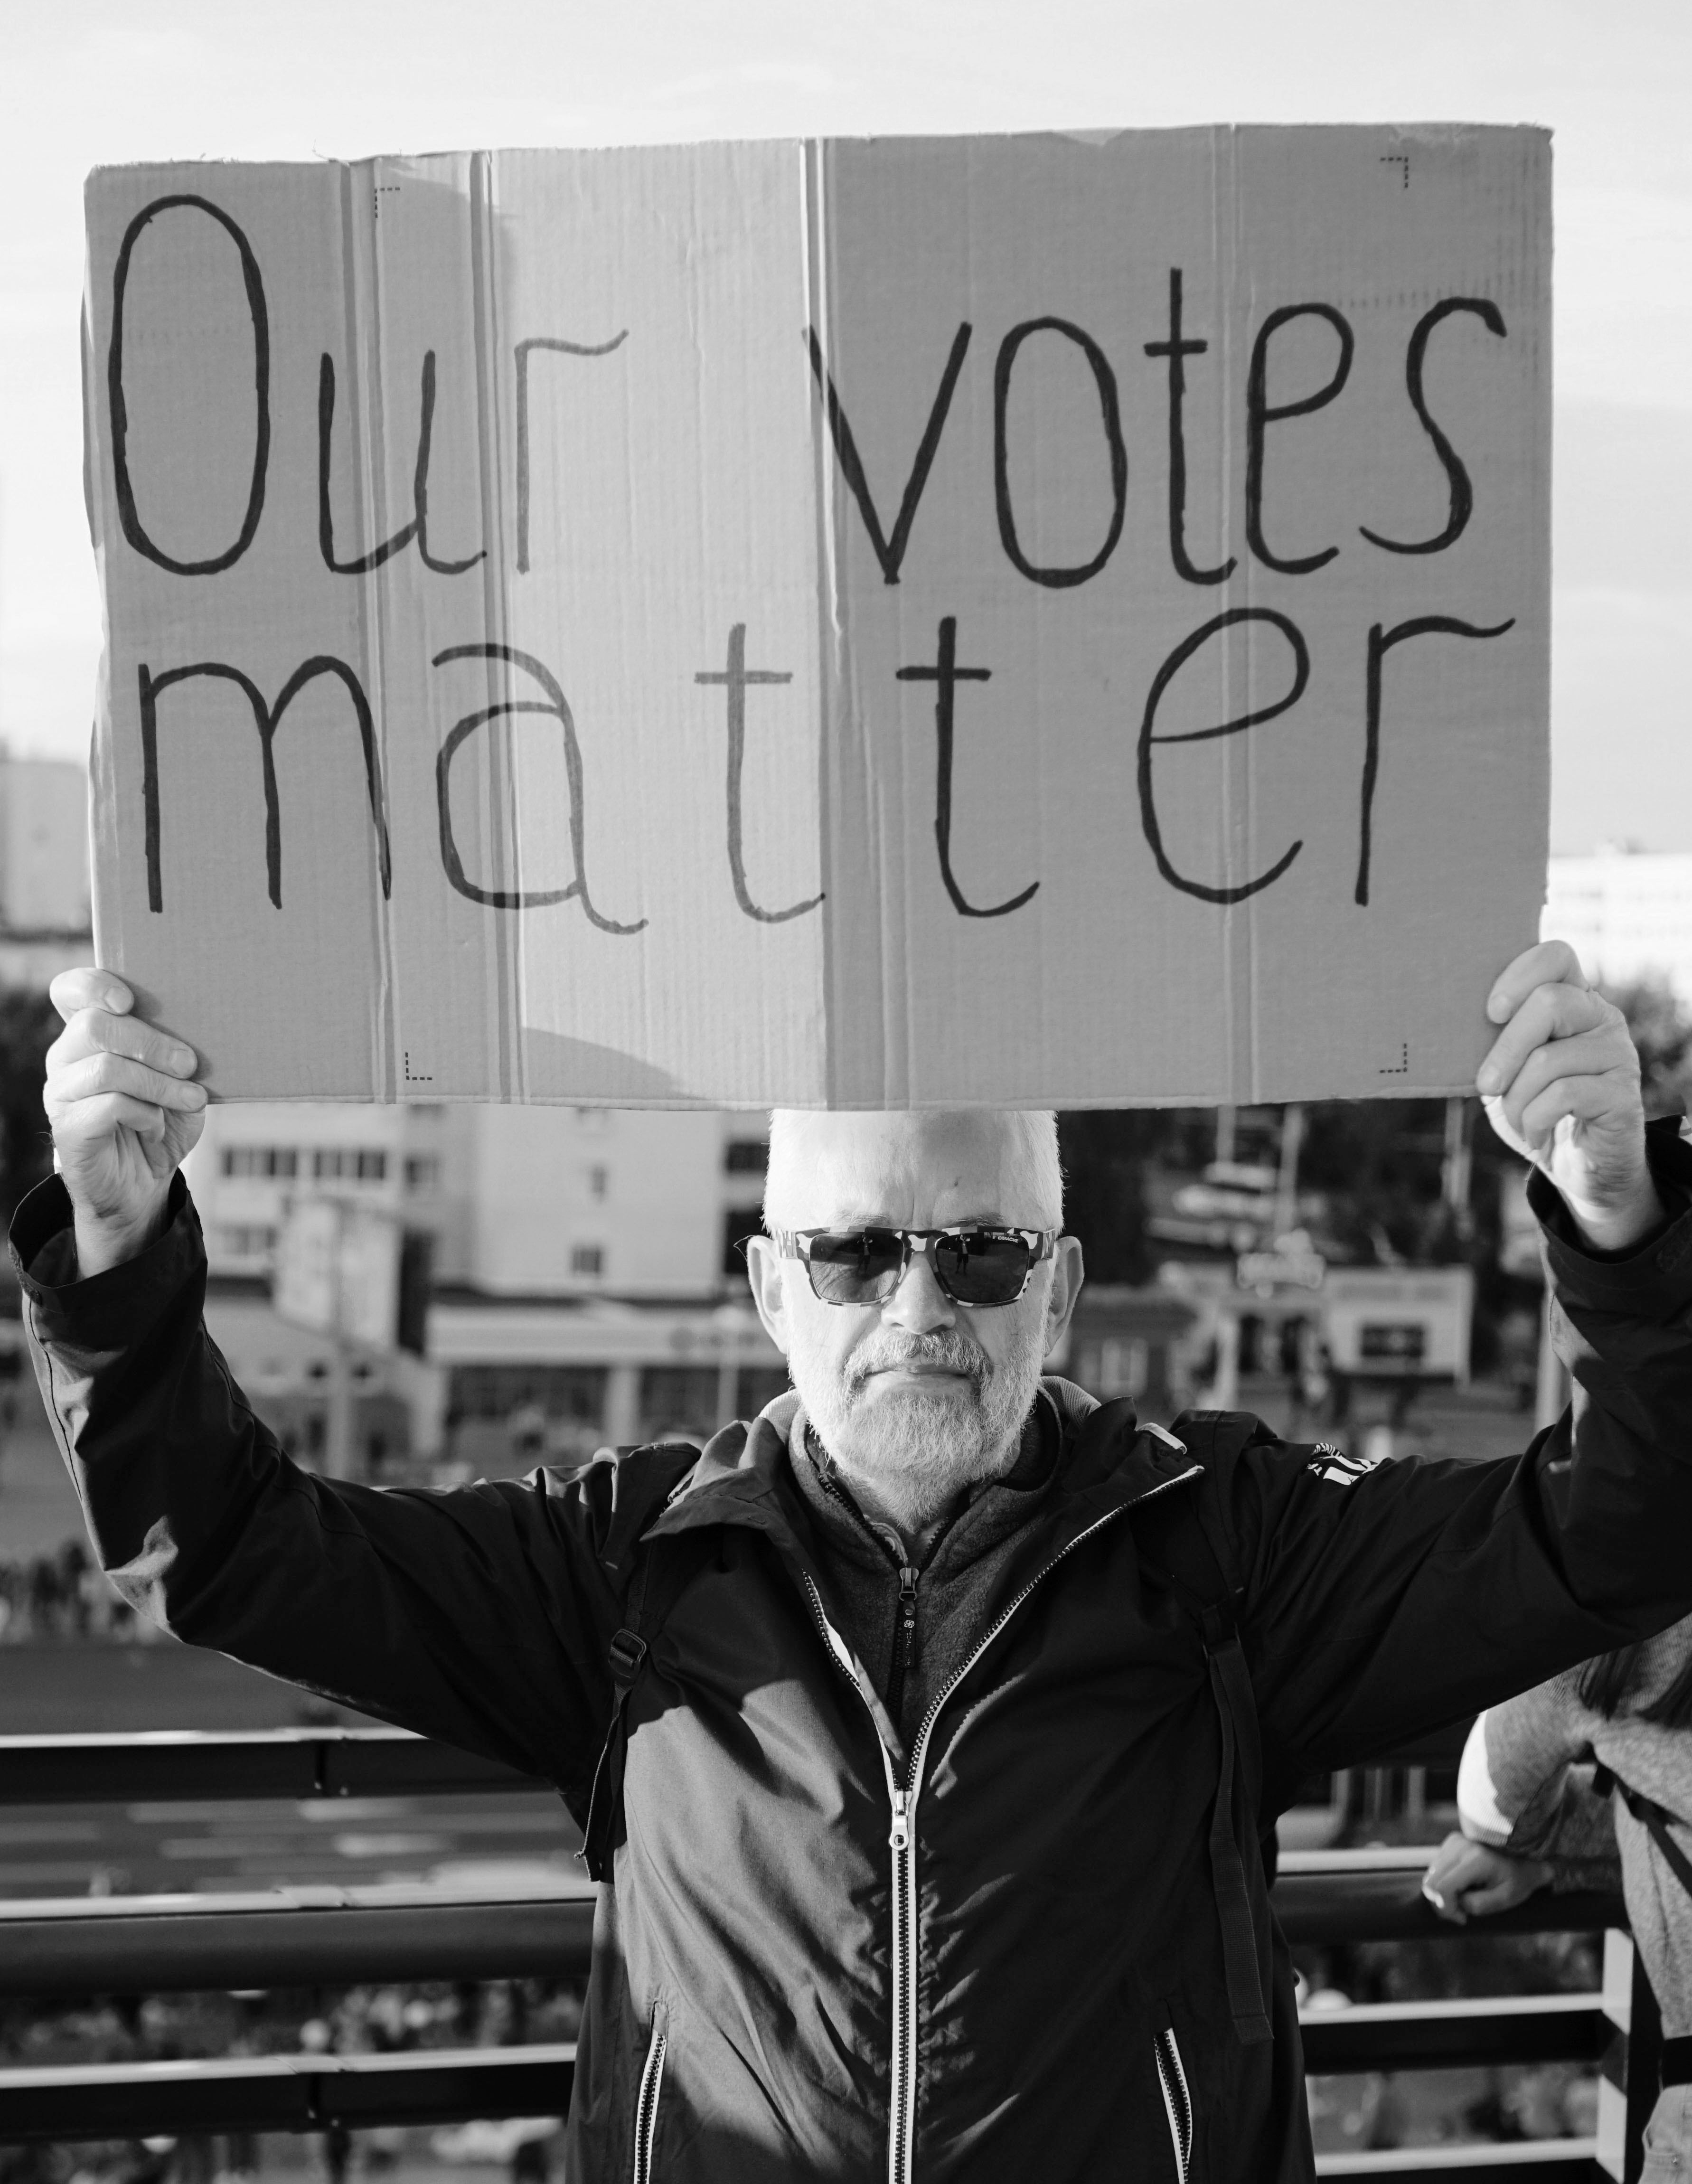 Your Voice Matters. Vote!